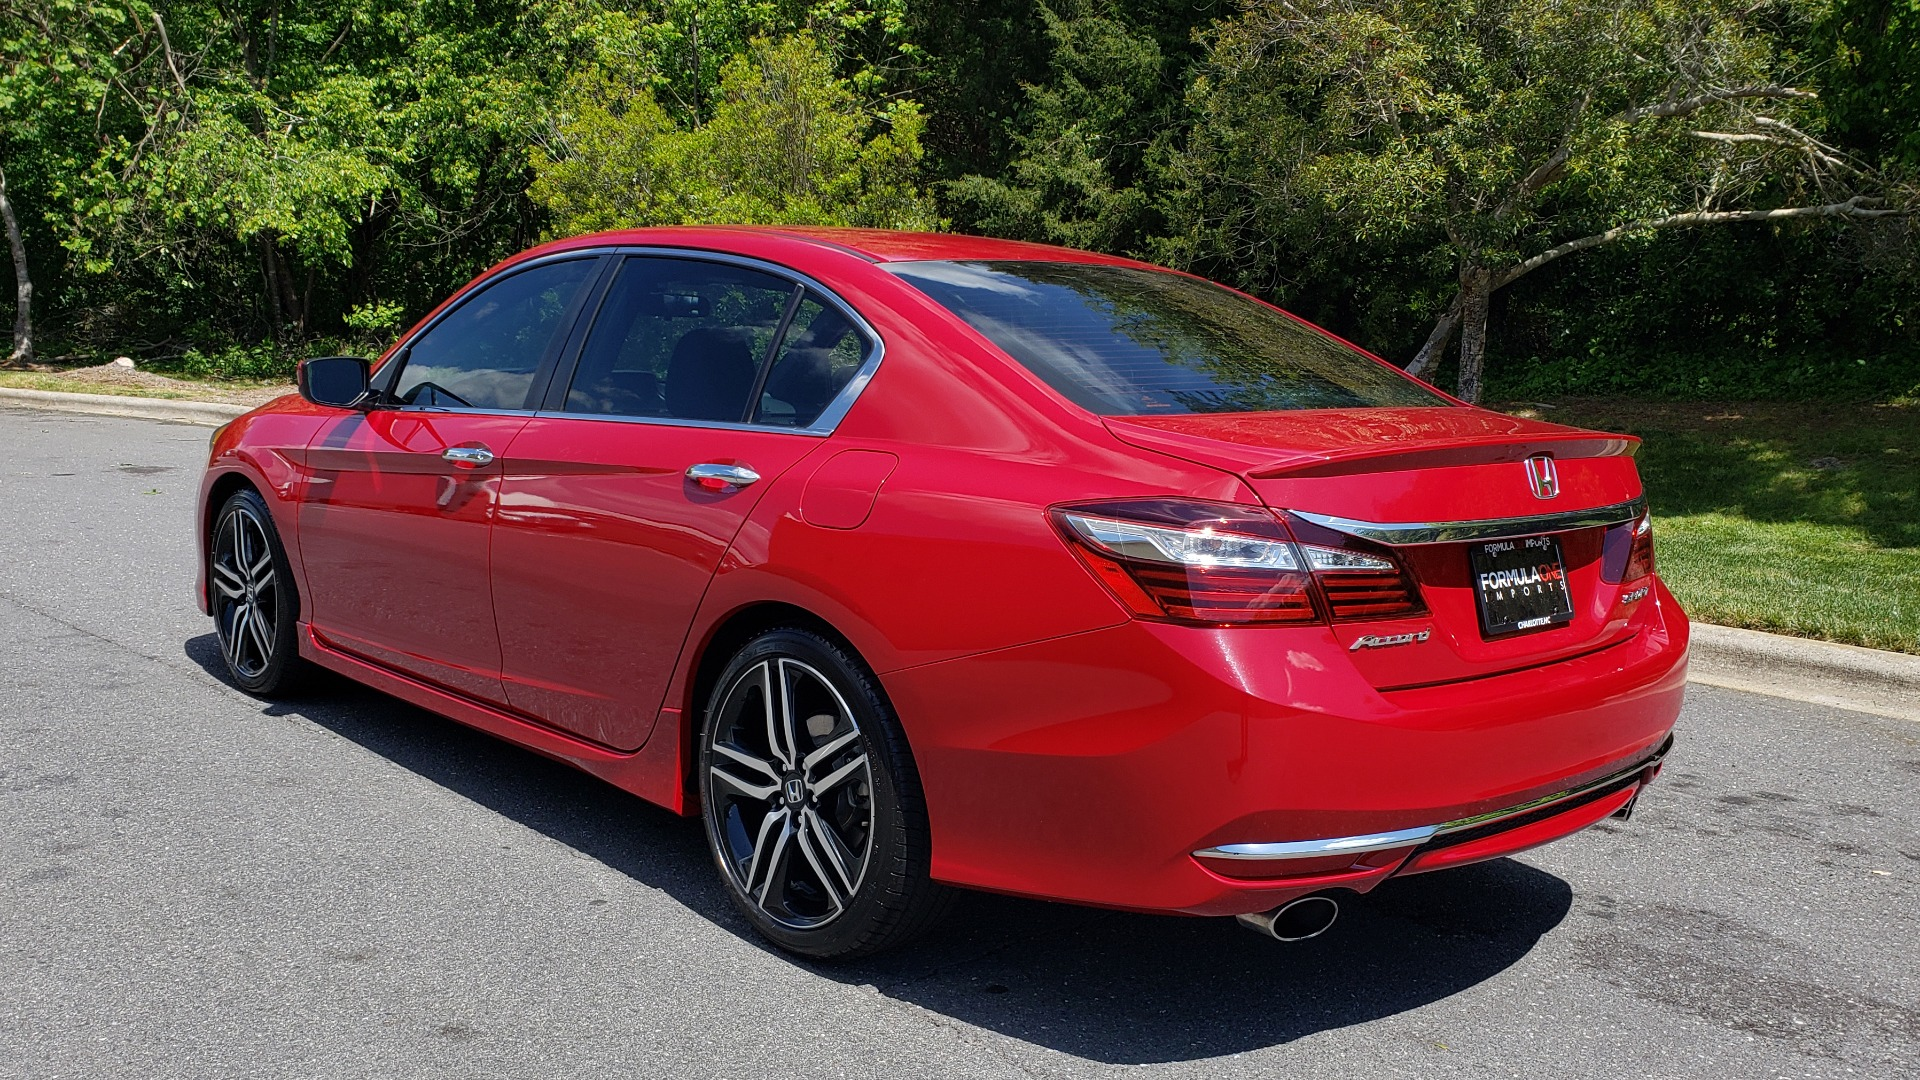 Used 2016 Honda ACCORD SEDAN SPORT / 4-CYL / CVT TRANS / SPOILER / 19IN ALLOY WHEELS for sale Sold at Formula Imports in Charlotte NC 28227 3